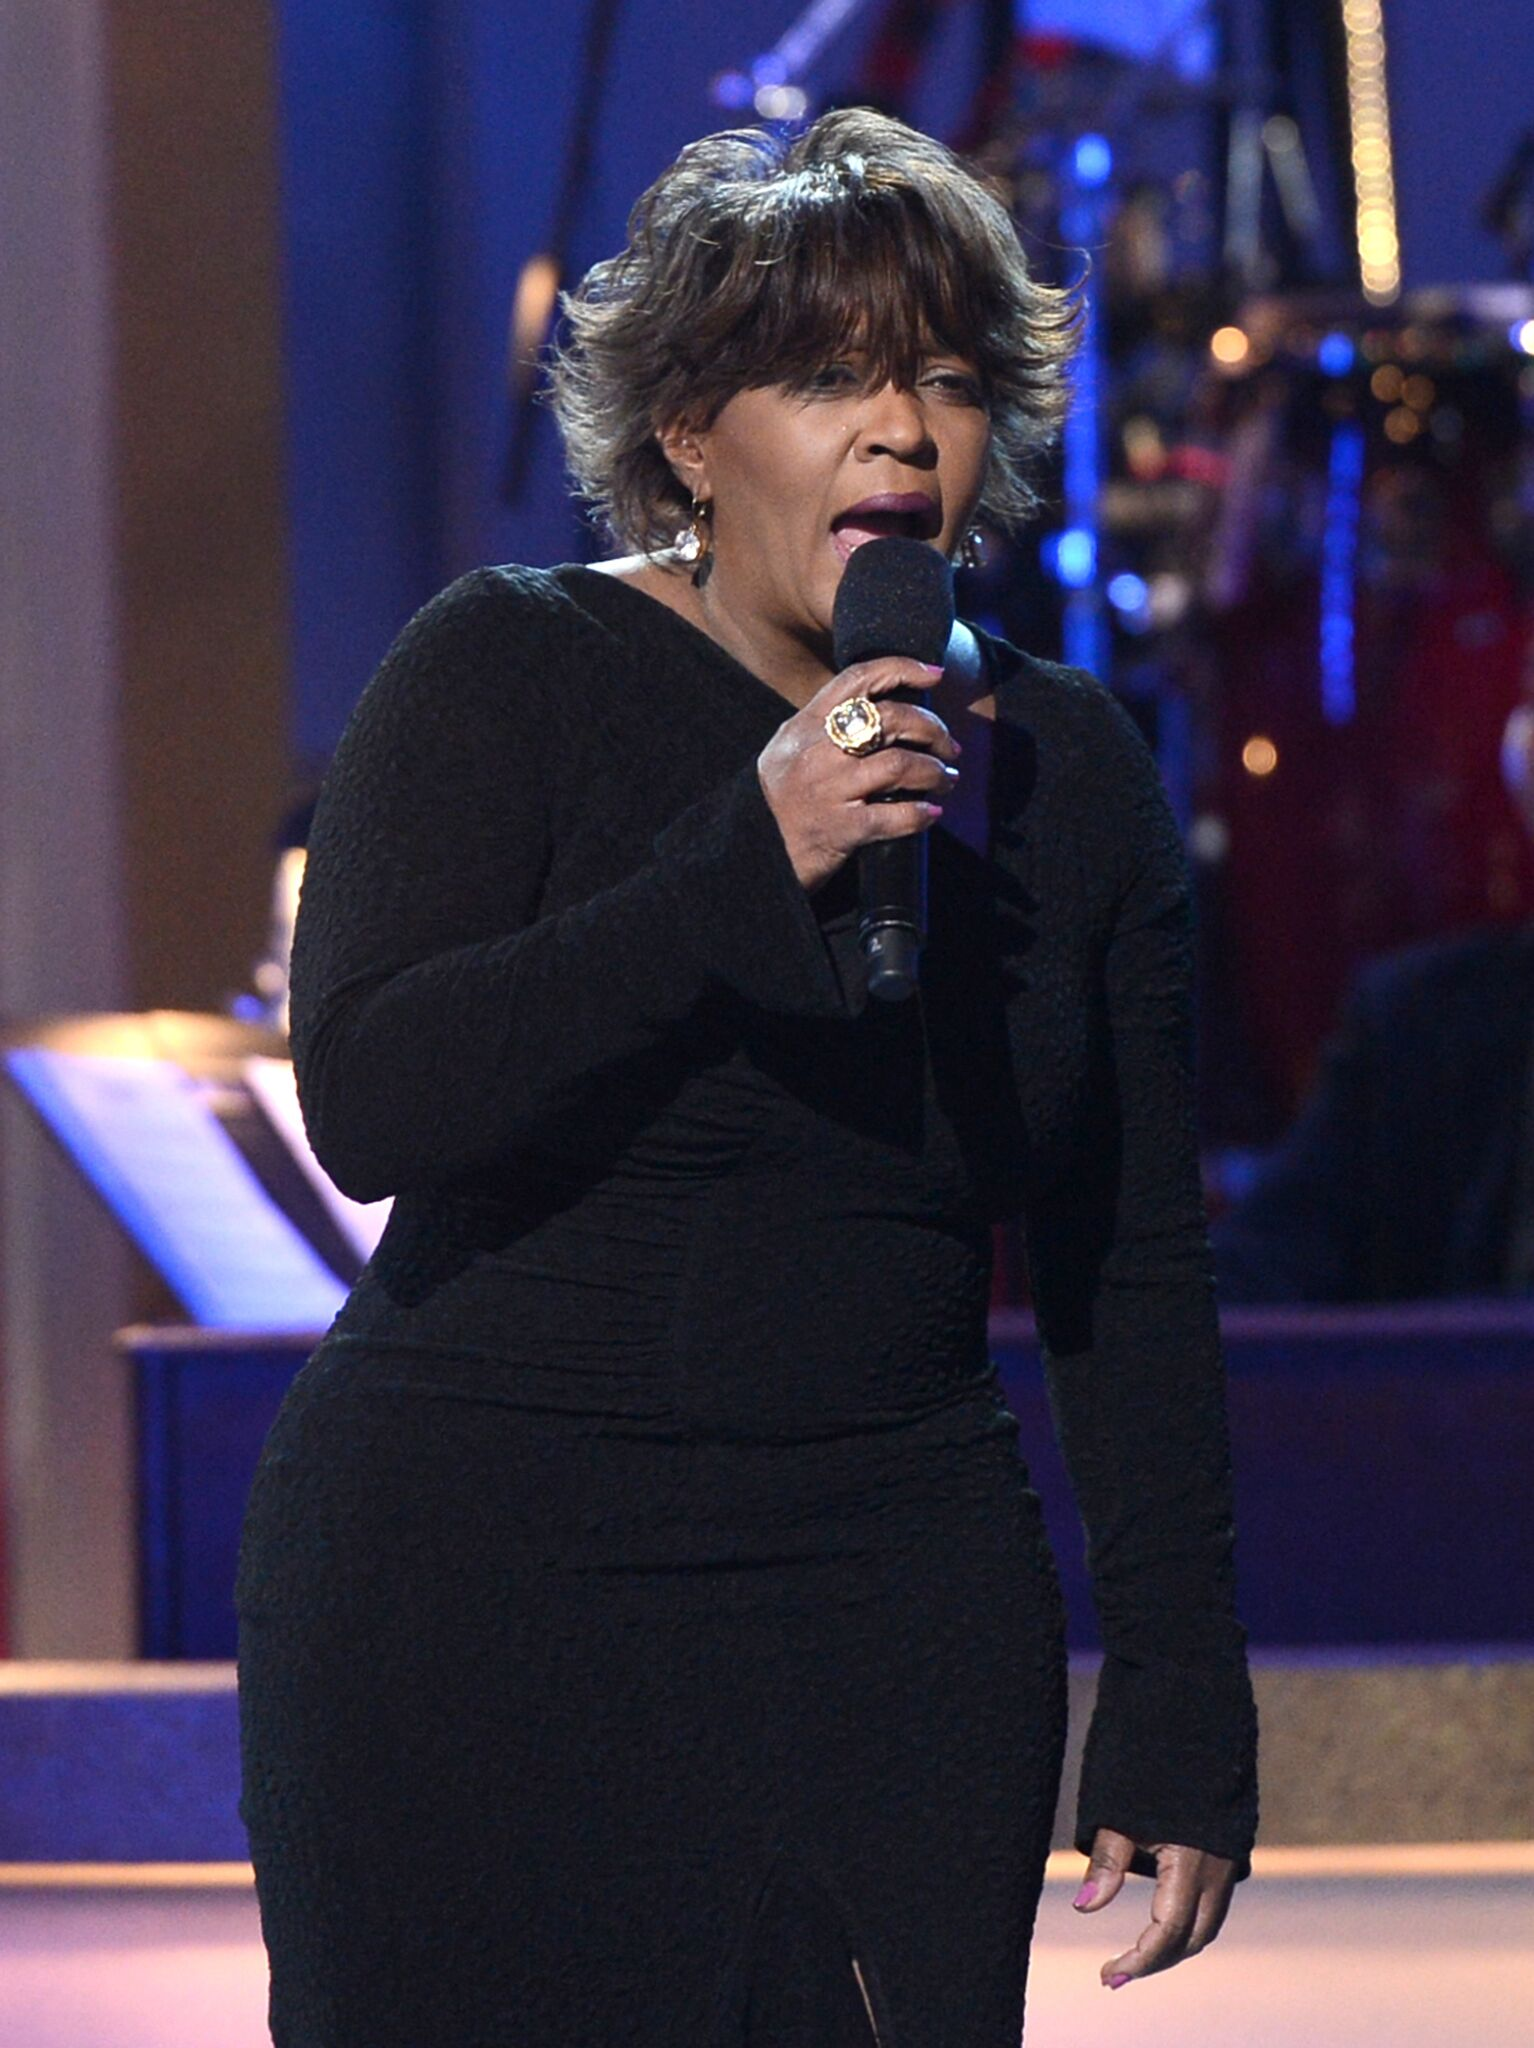 Anita Baker performs onstage during the BET Celebration of Gospel 2013 at Orpheum Theatre   Getty Images